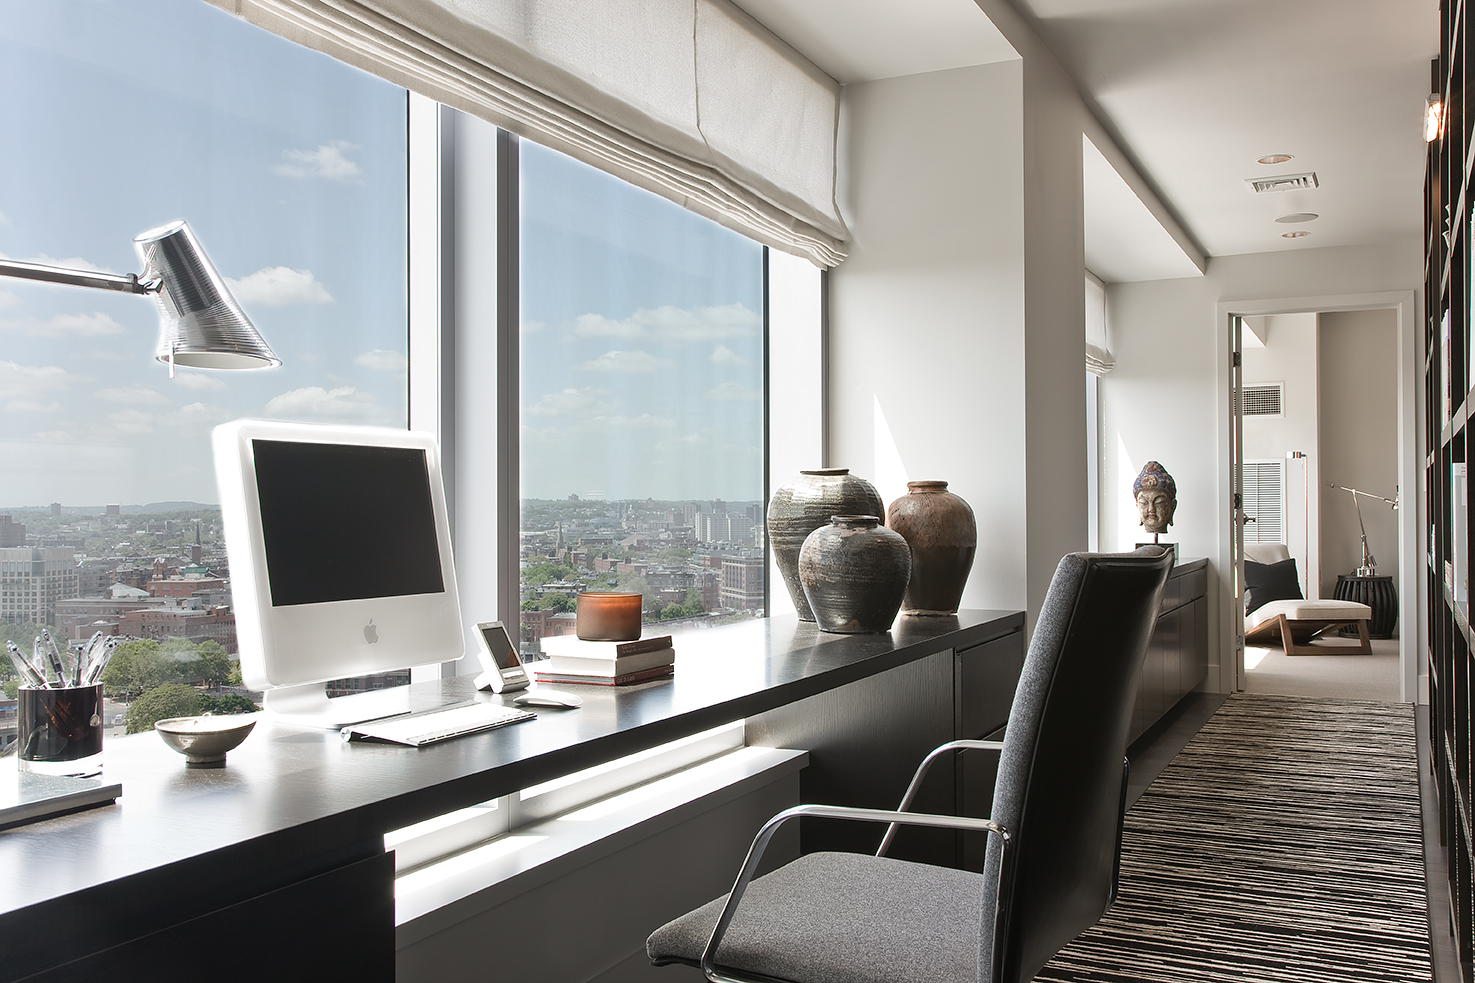 Home Integration at The W Boston by Elite Media Solutions